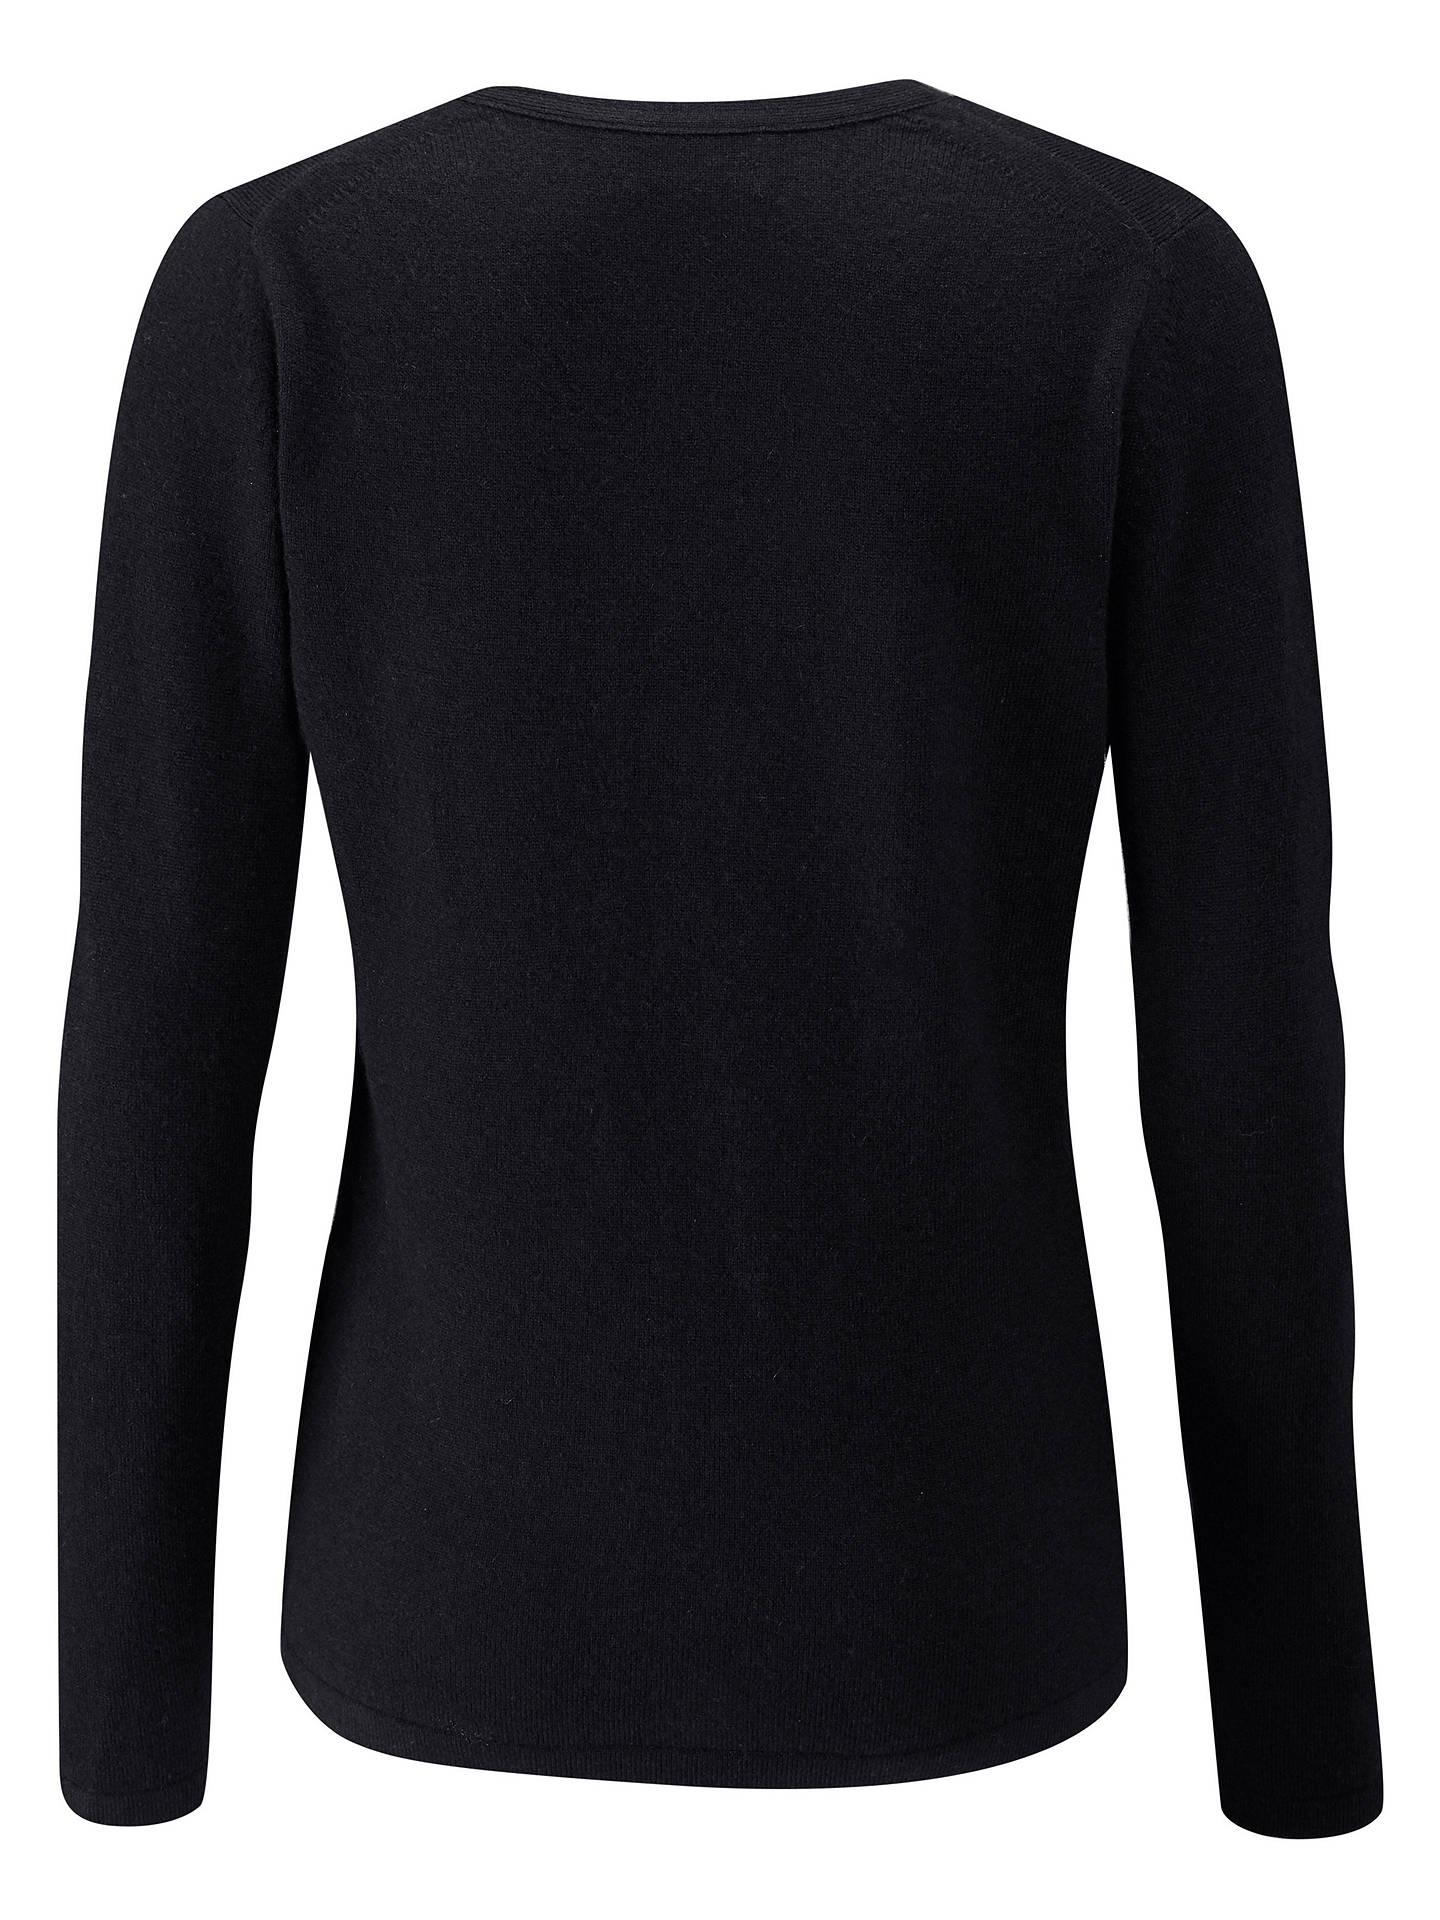 BuyPure Collection V-Neck Cashmere Cardigan, Black, 8 Online at johnlewis.com